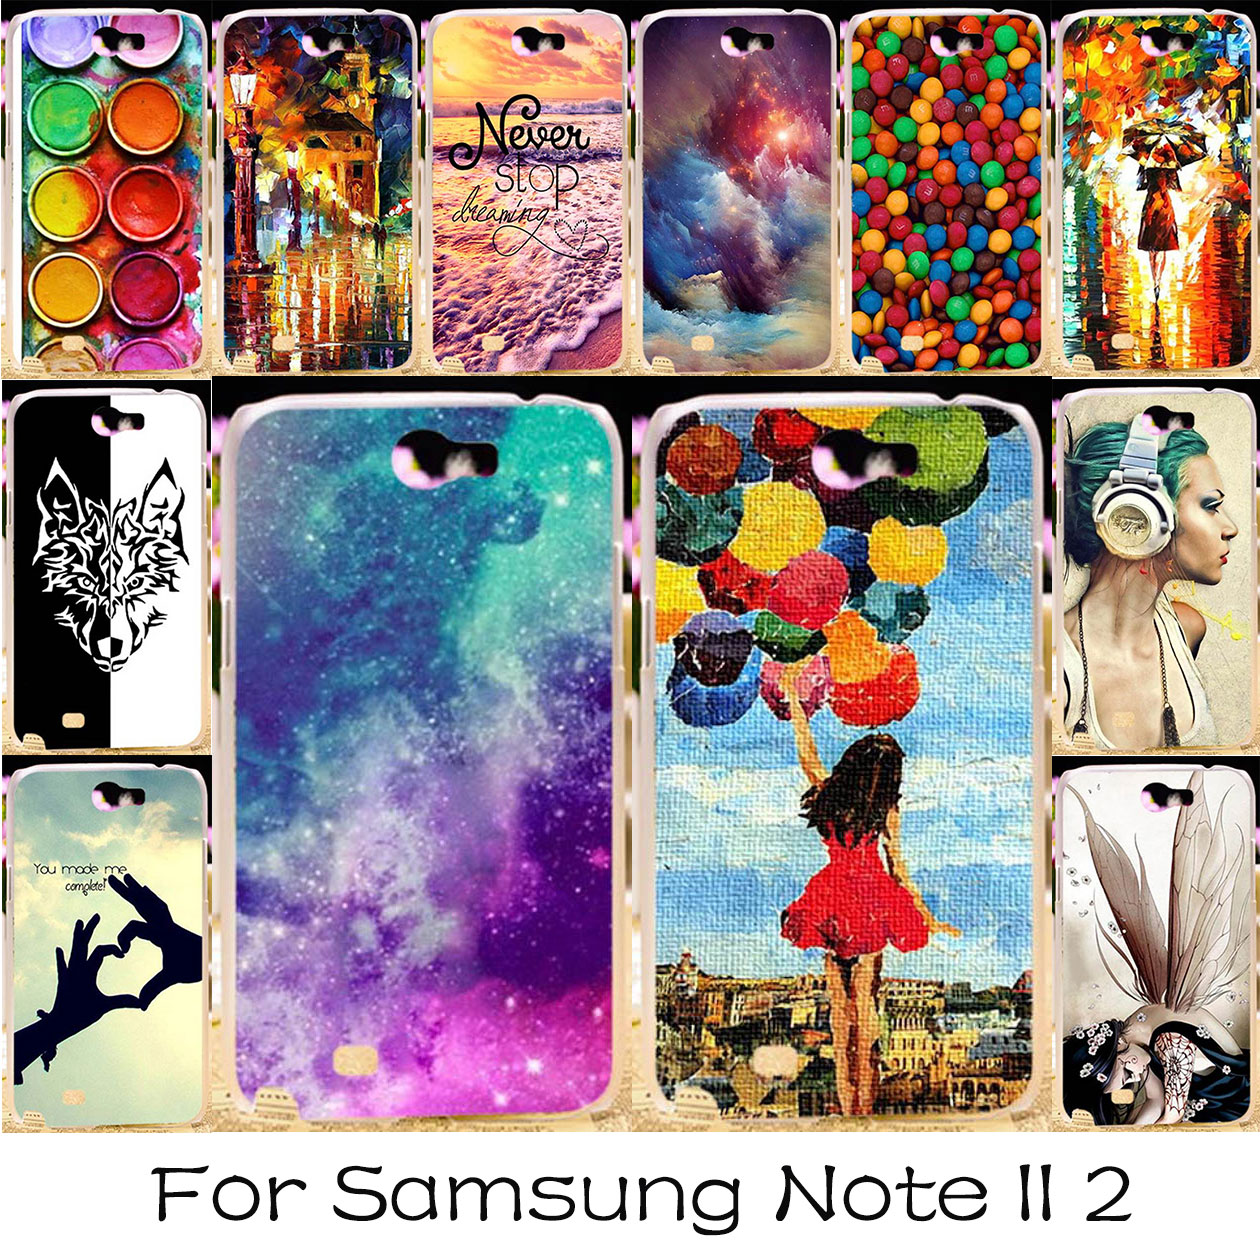 TAOYUNXI Plastic DIY Painted Phone Cover Case For Samsung Galaxy Note 2 Note II N7100 Bag N7105 Note2 NoteII 7100 Case Covers ...